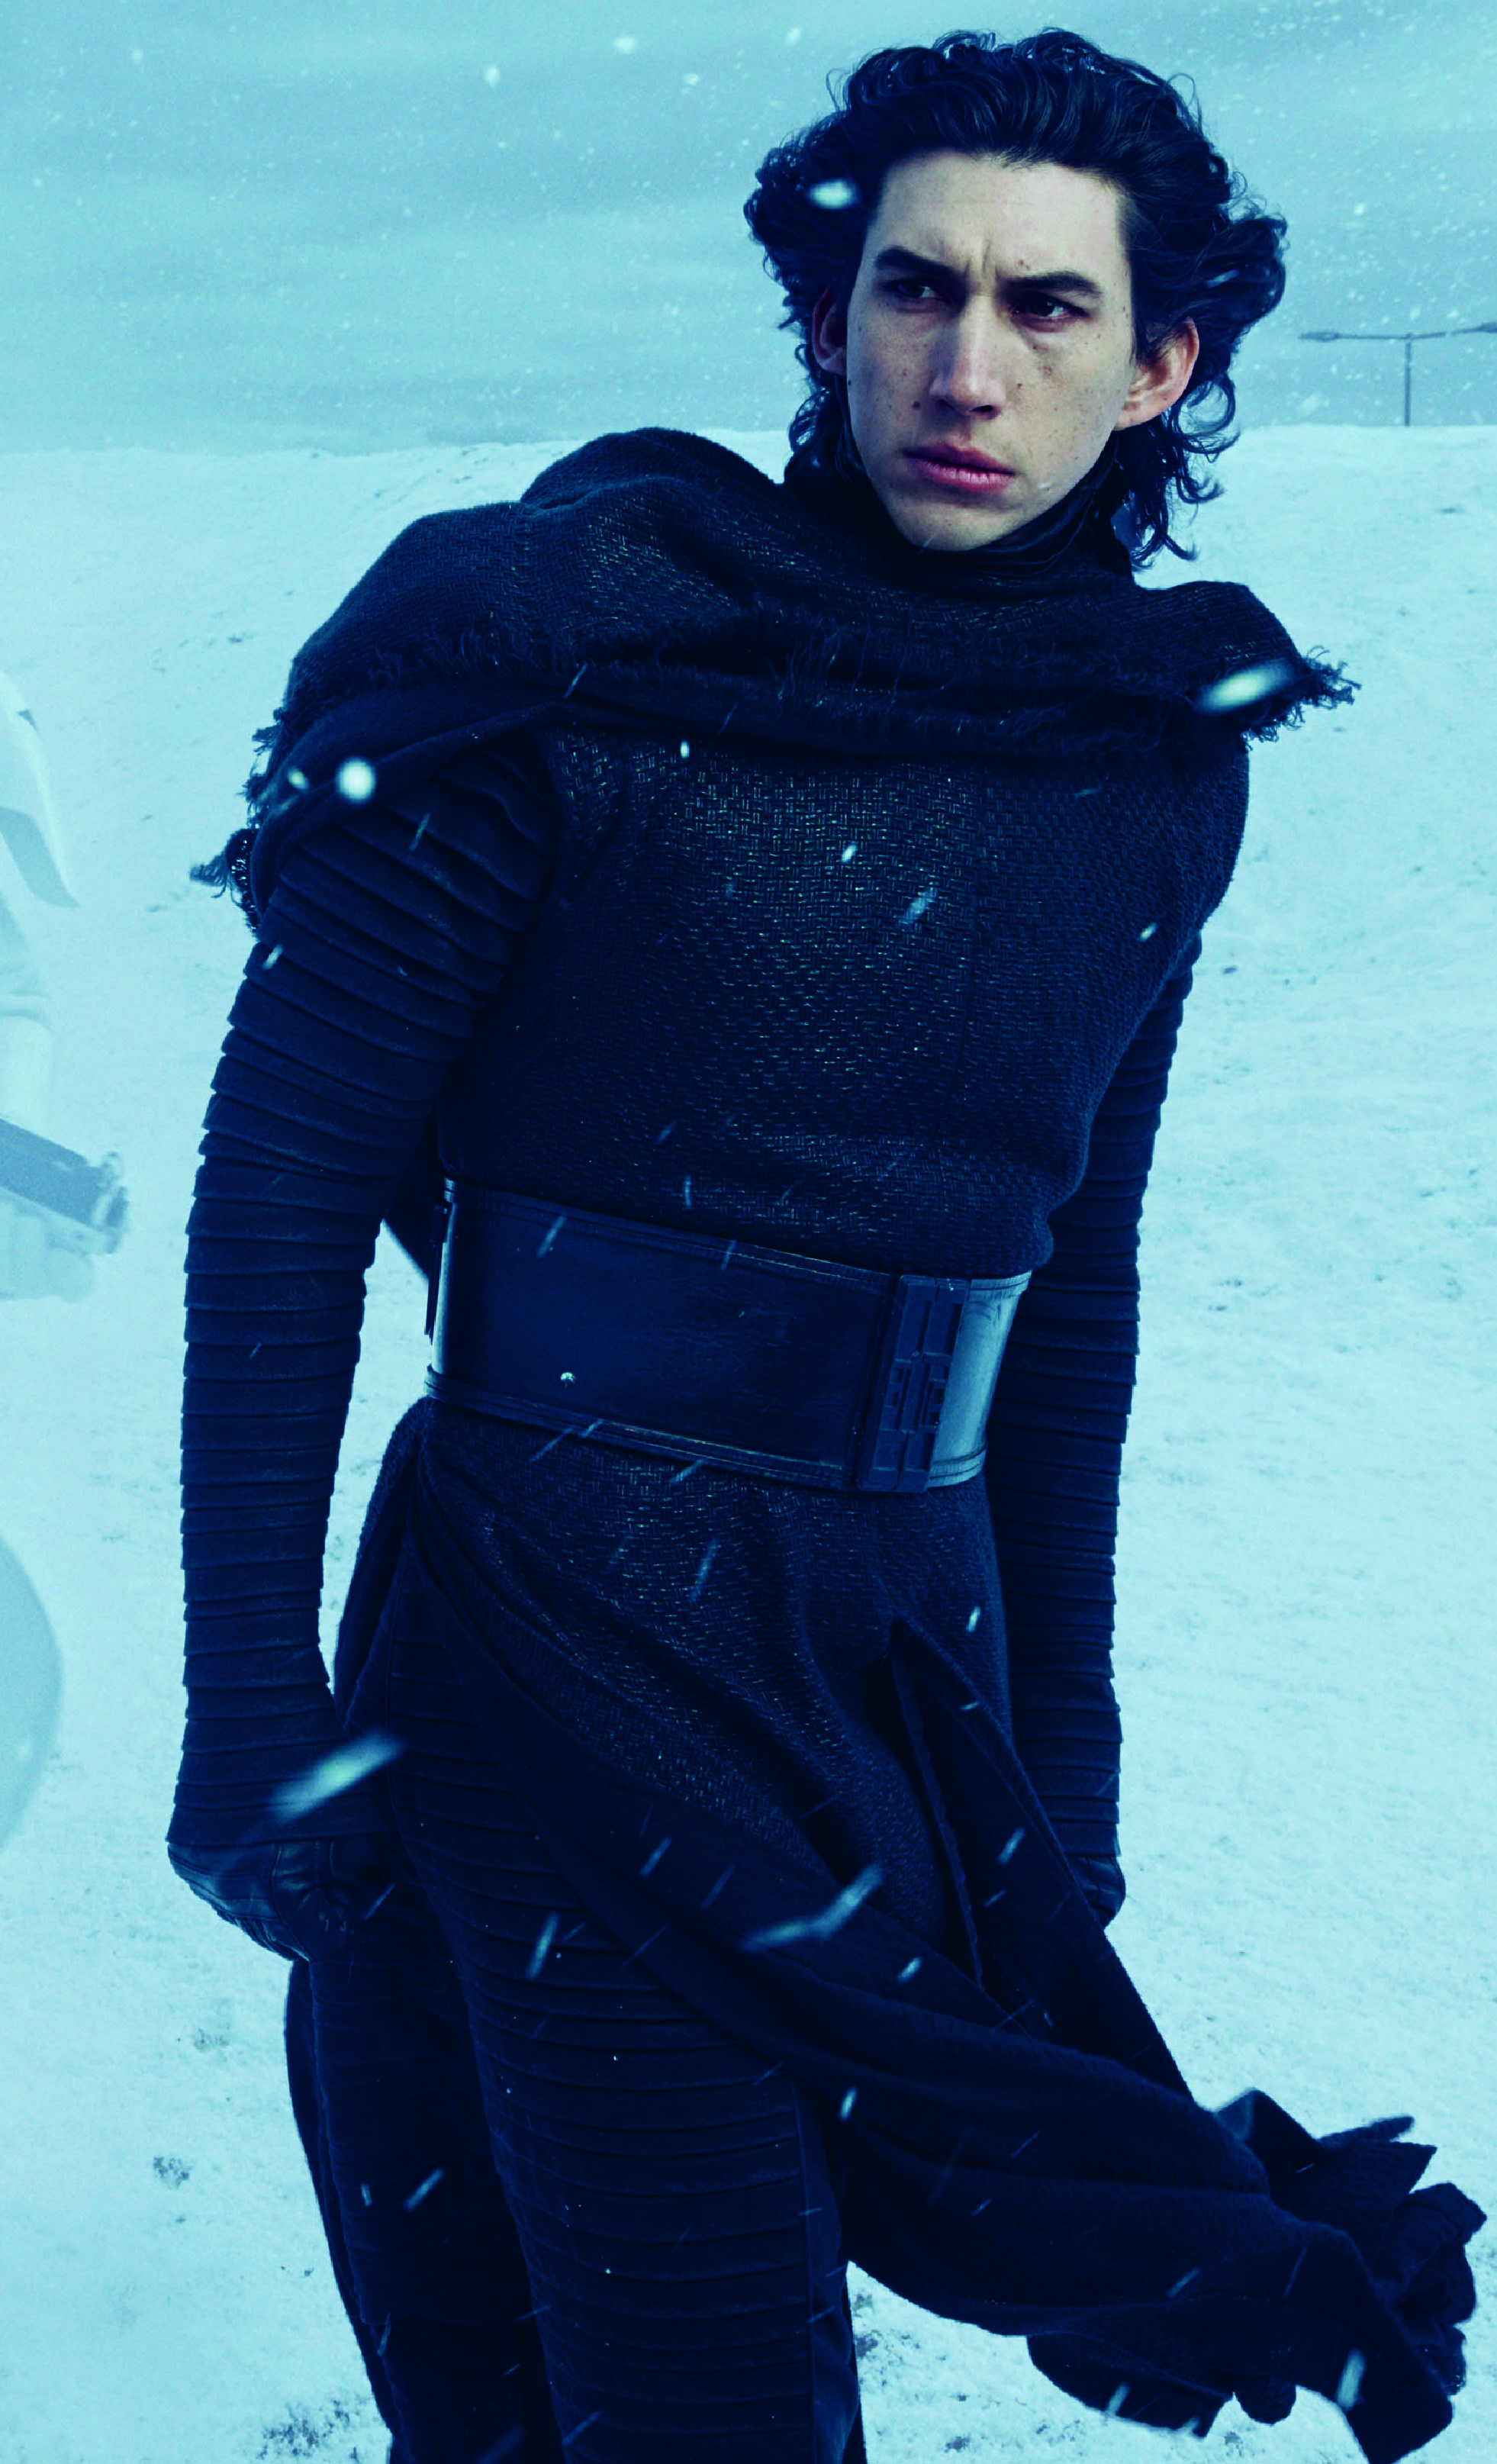 Images kylo ren without mask 1962x3229